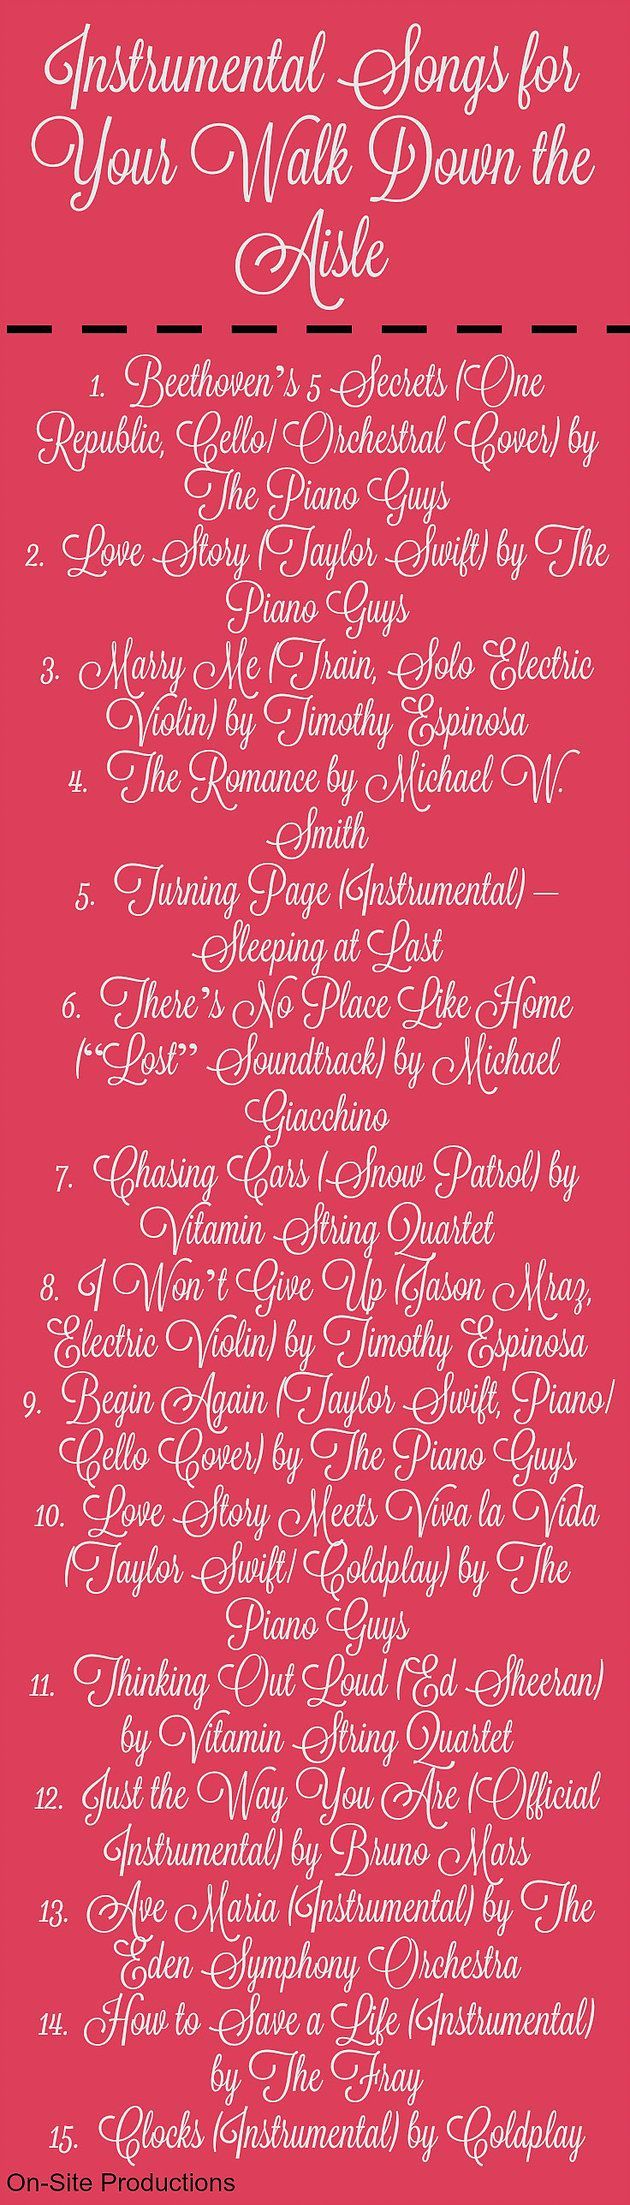 15 Instrumental Songs To Play For Your Walk Down The Aisle Oh My These Are Soooo Beautiful Wedding Ceremony Music Wedding Songs Wedding Ceremony Songs